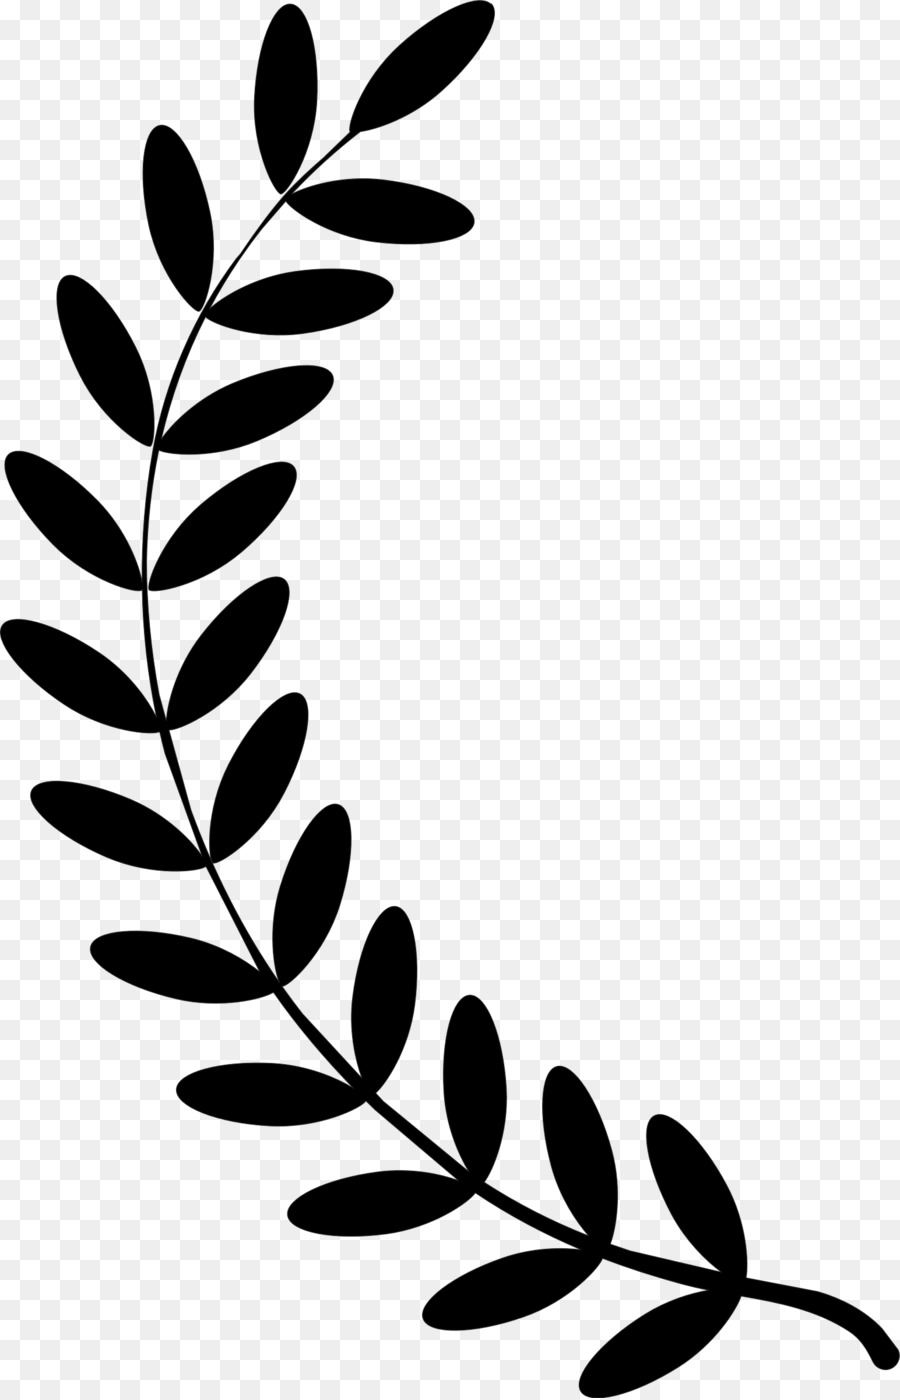 olive branch laurel wreath clip art laurel wreath images png rh kisspng com olive branch clipsham review olive branch clipsham opening times